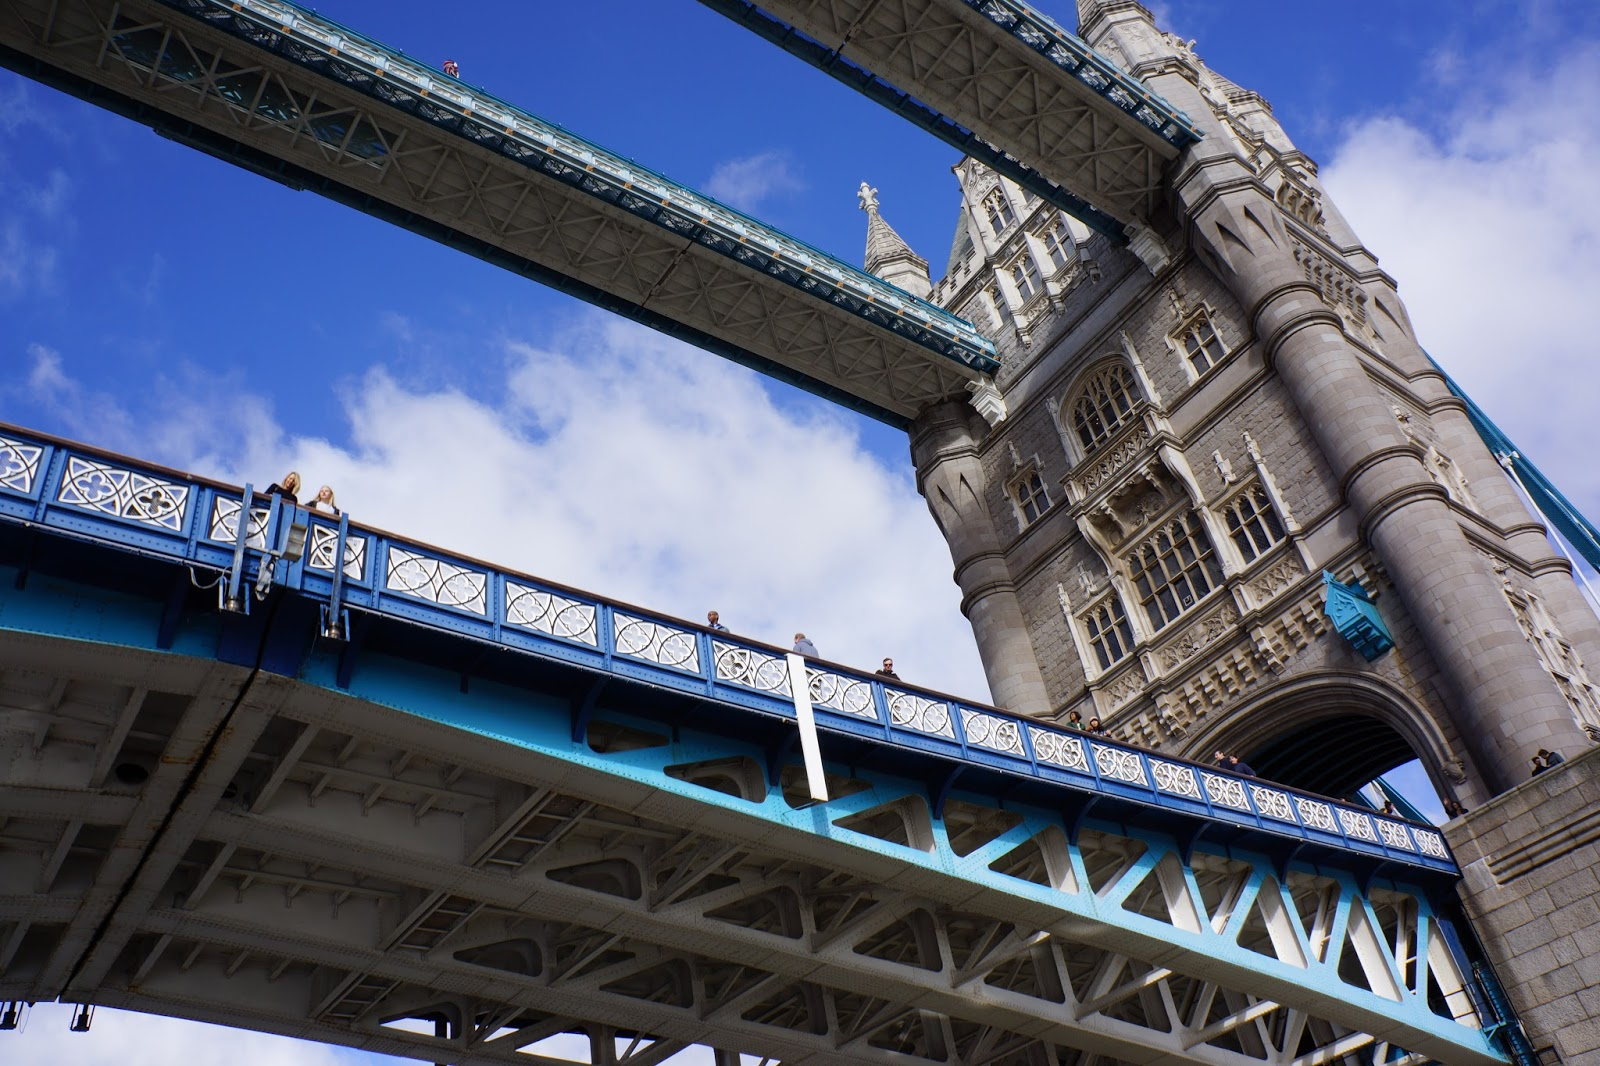 tower bridge from a boat below